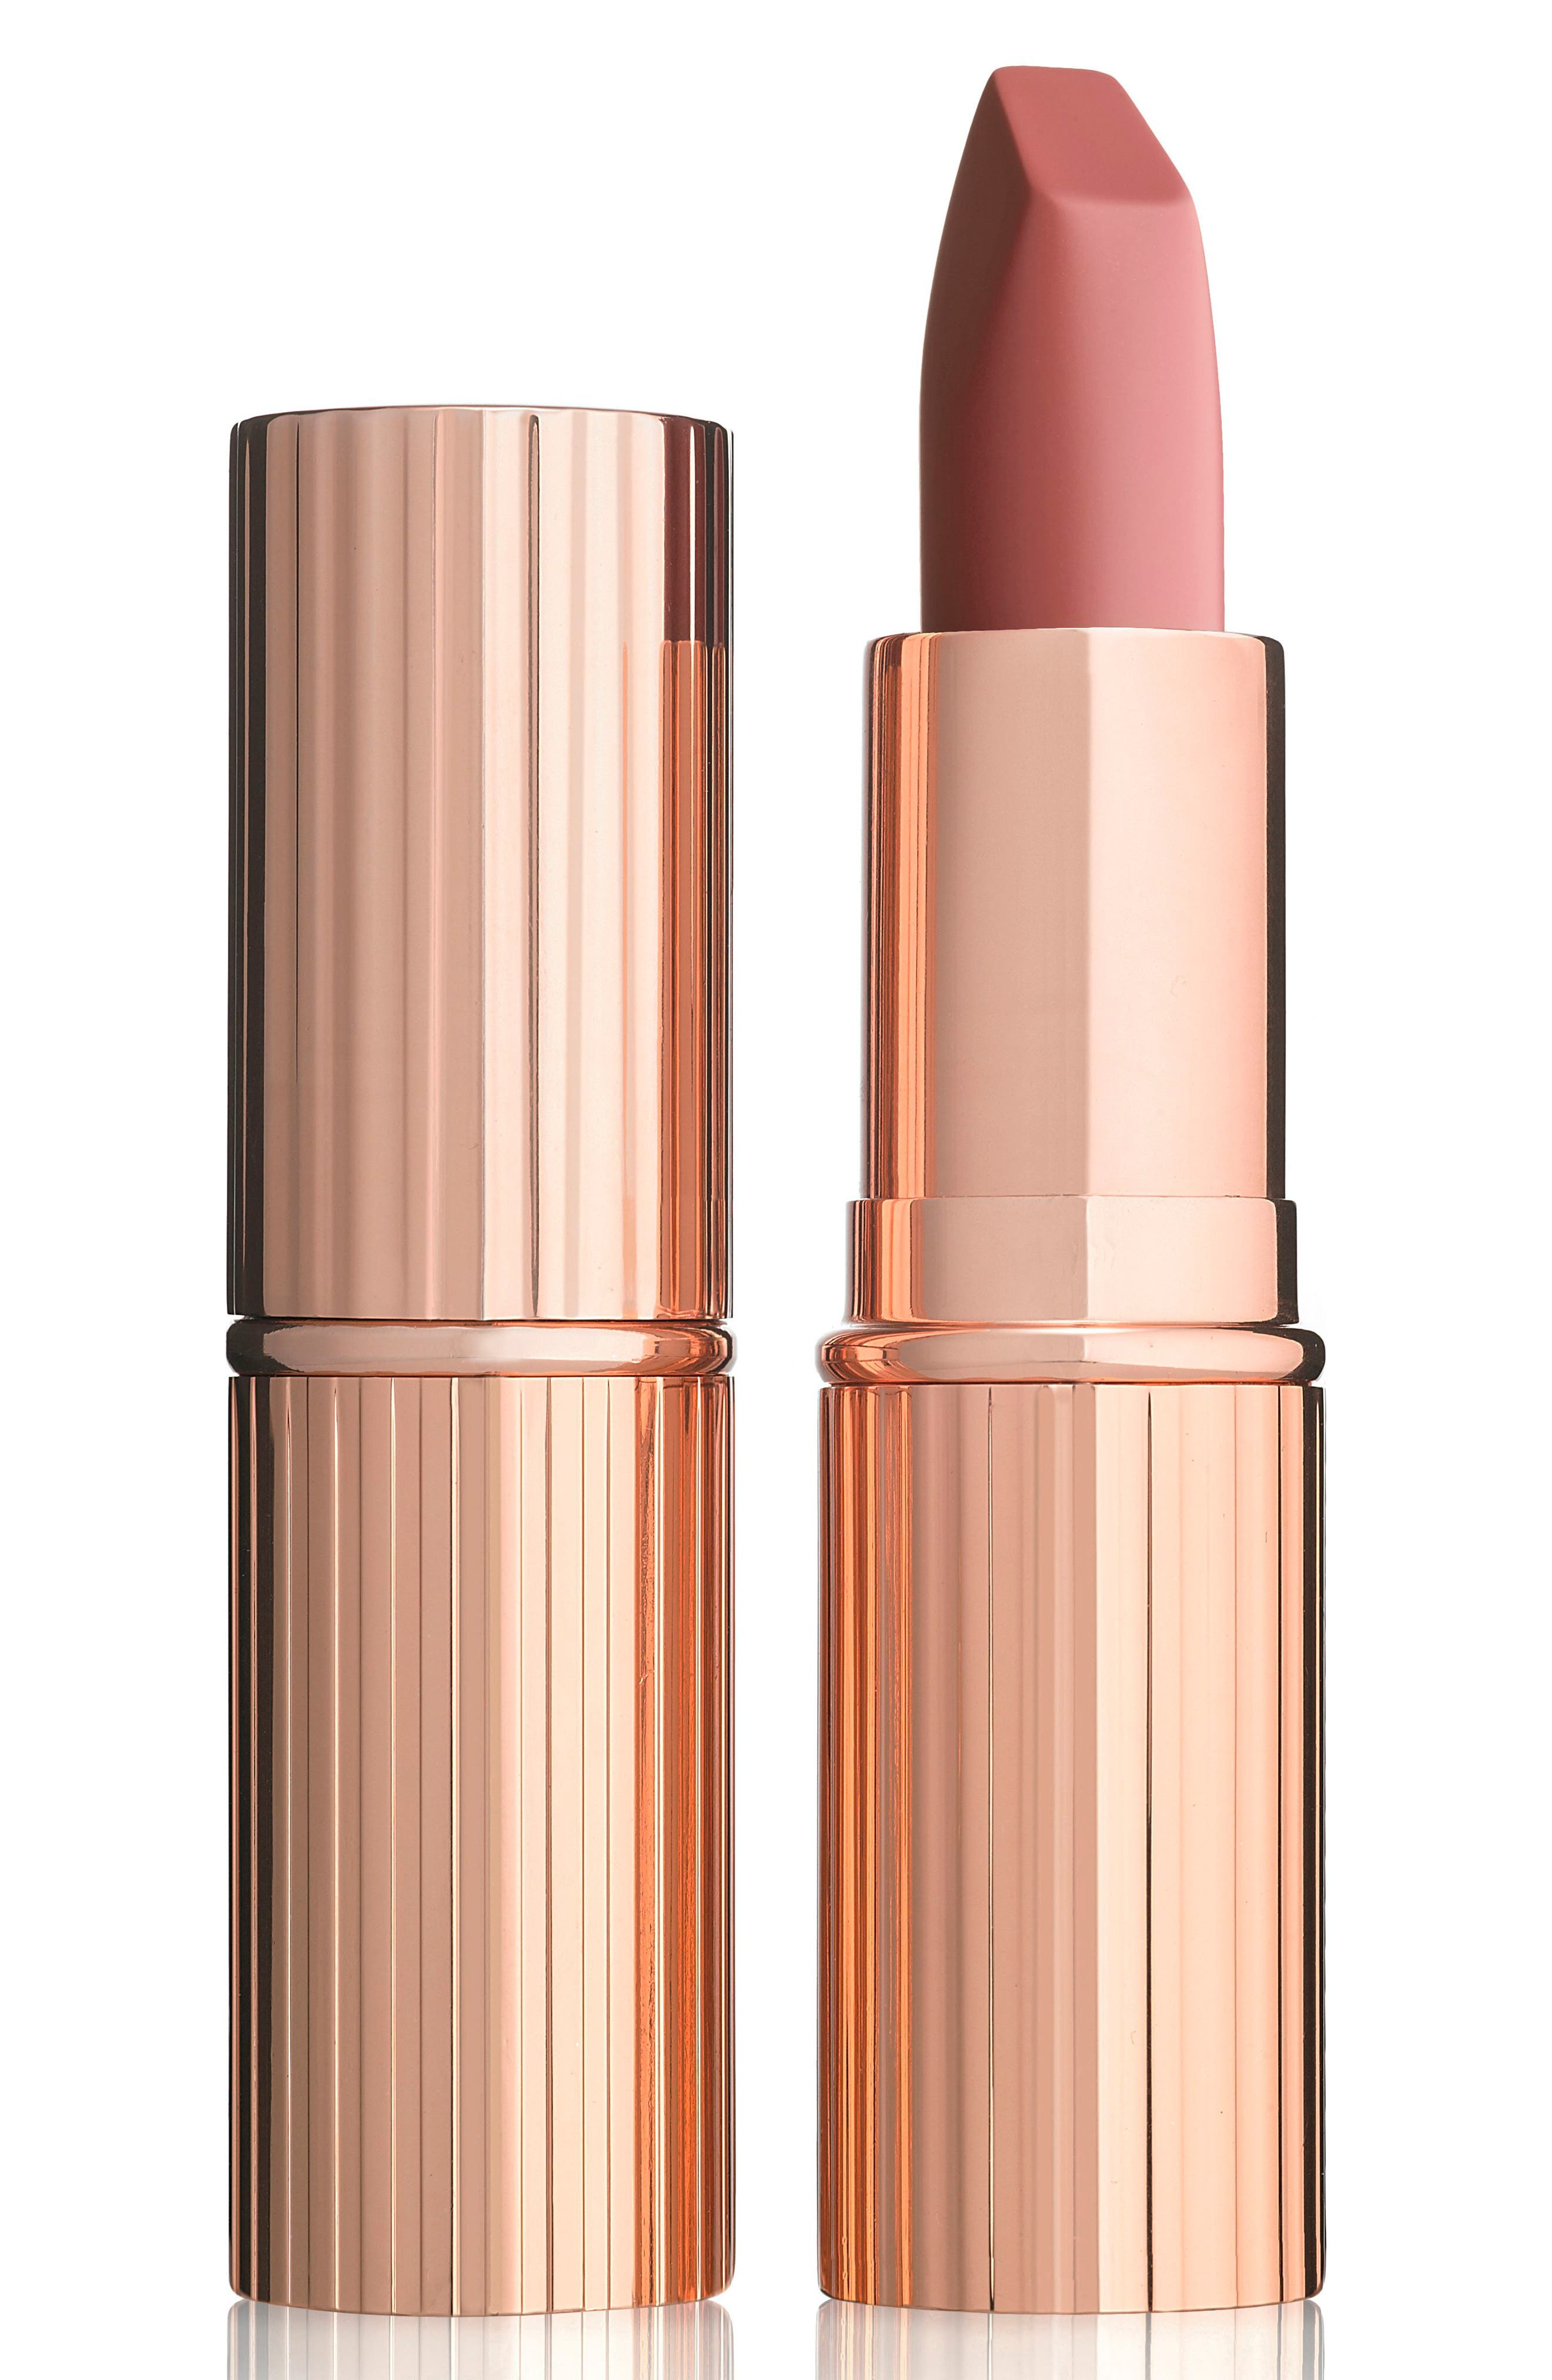 Image of CHARLOTTE TILBURY Matte Revolution Lipstick - Pillow Talk Original